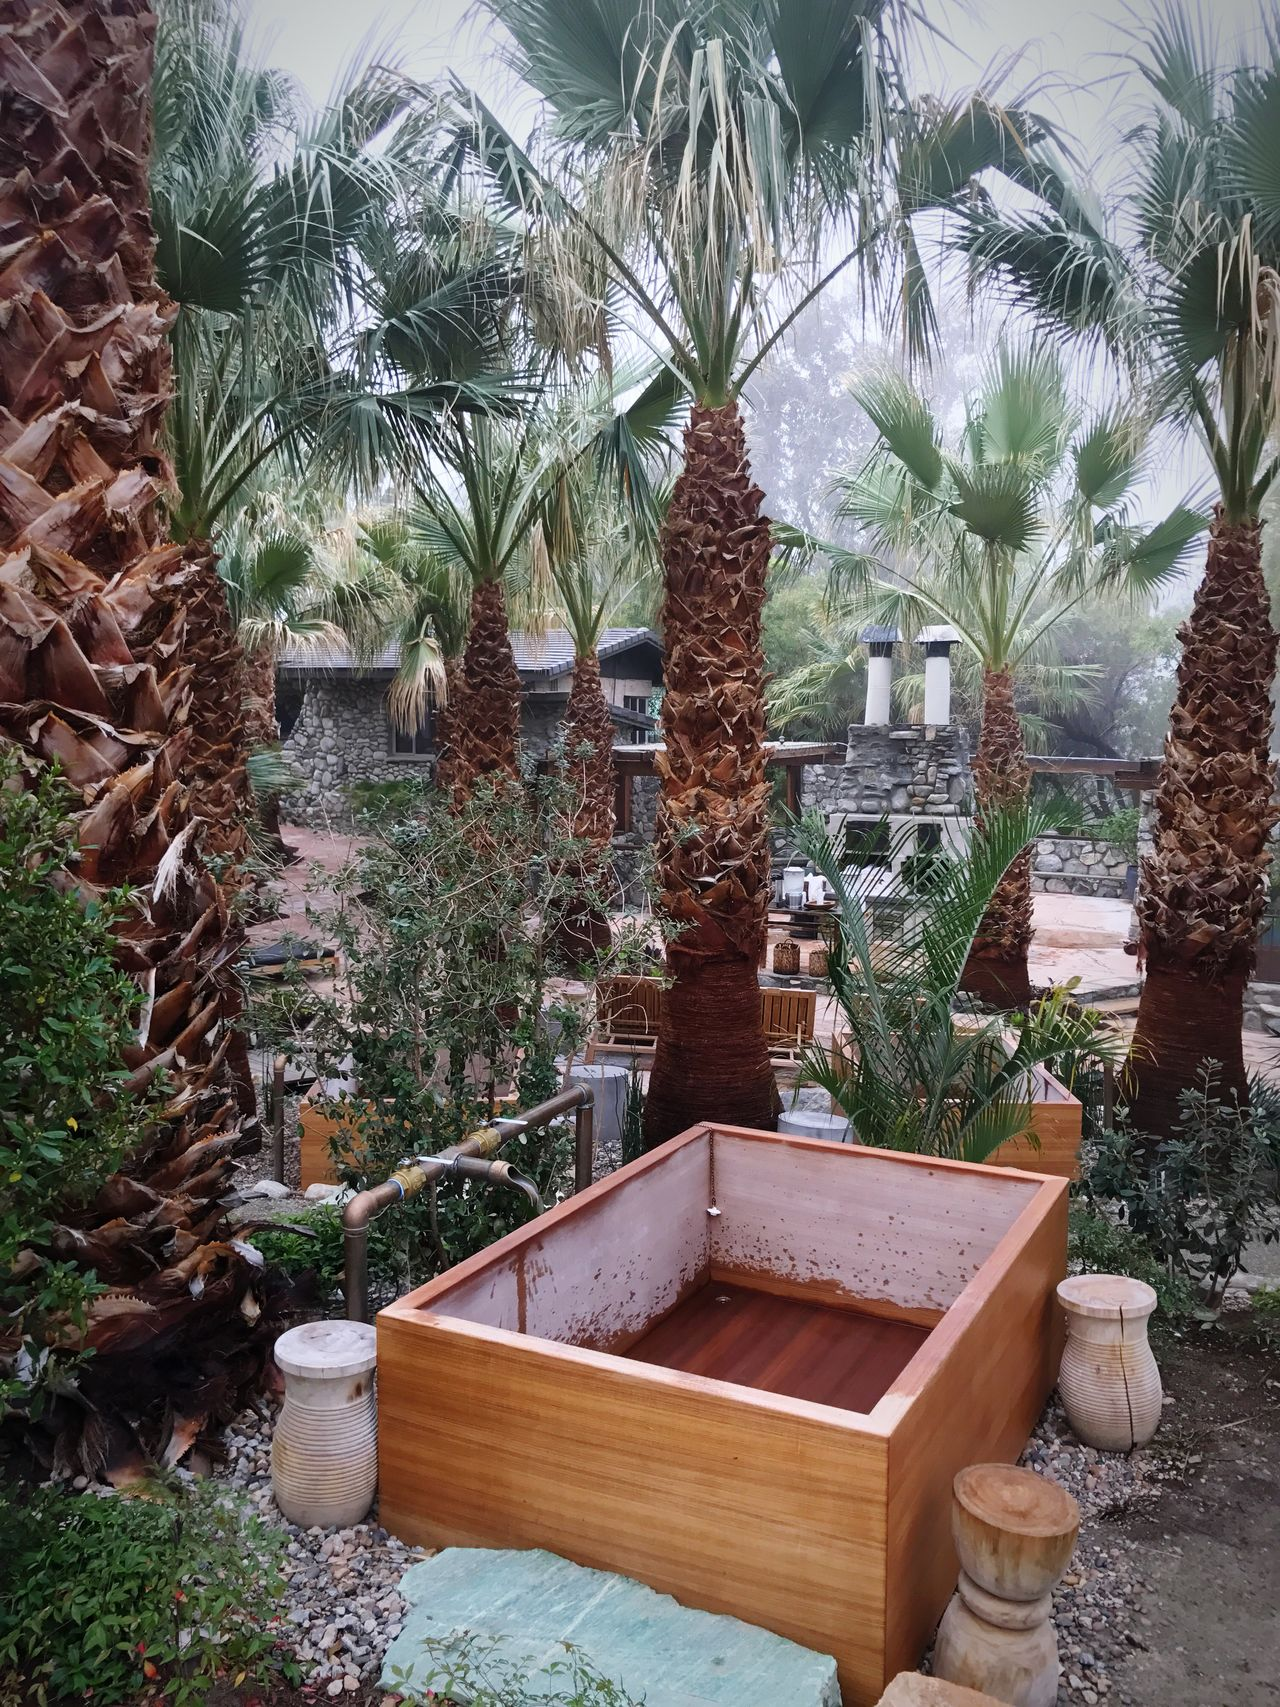 Bathtub between palm trees // Tree Palm Tree No People Growth Nature Built Structure Outdoors Architecture Day